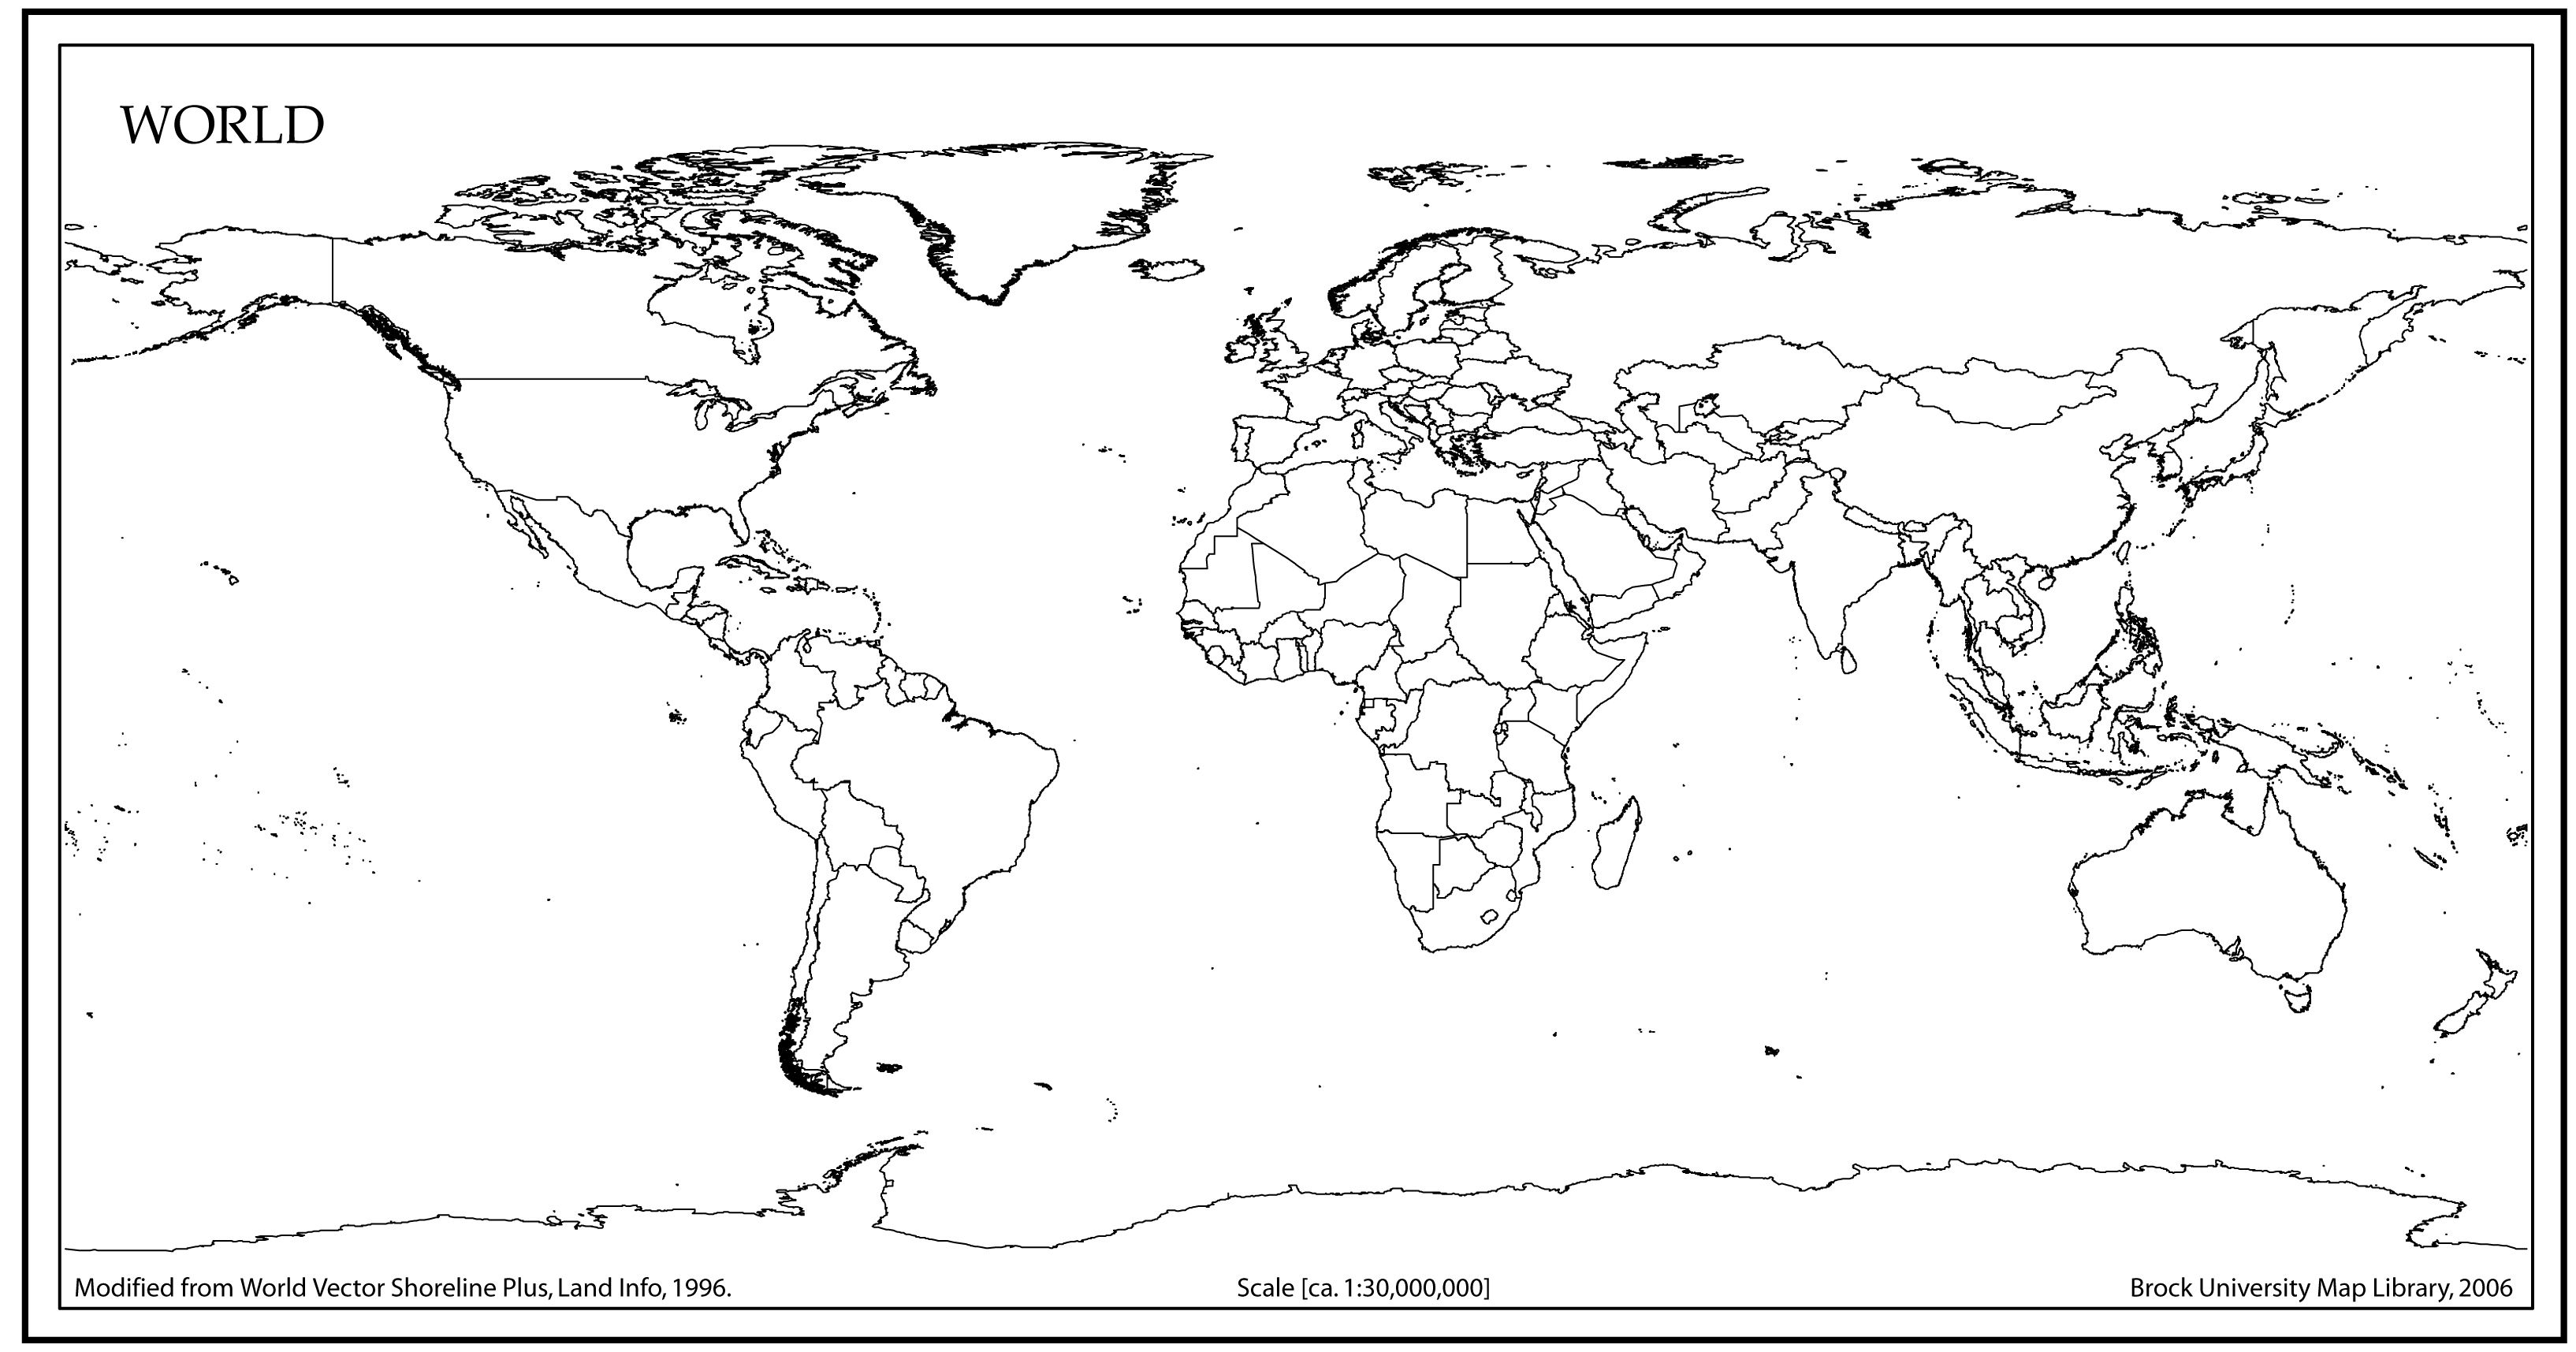 World Map Outline With Countries With Images World Map